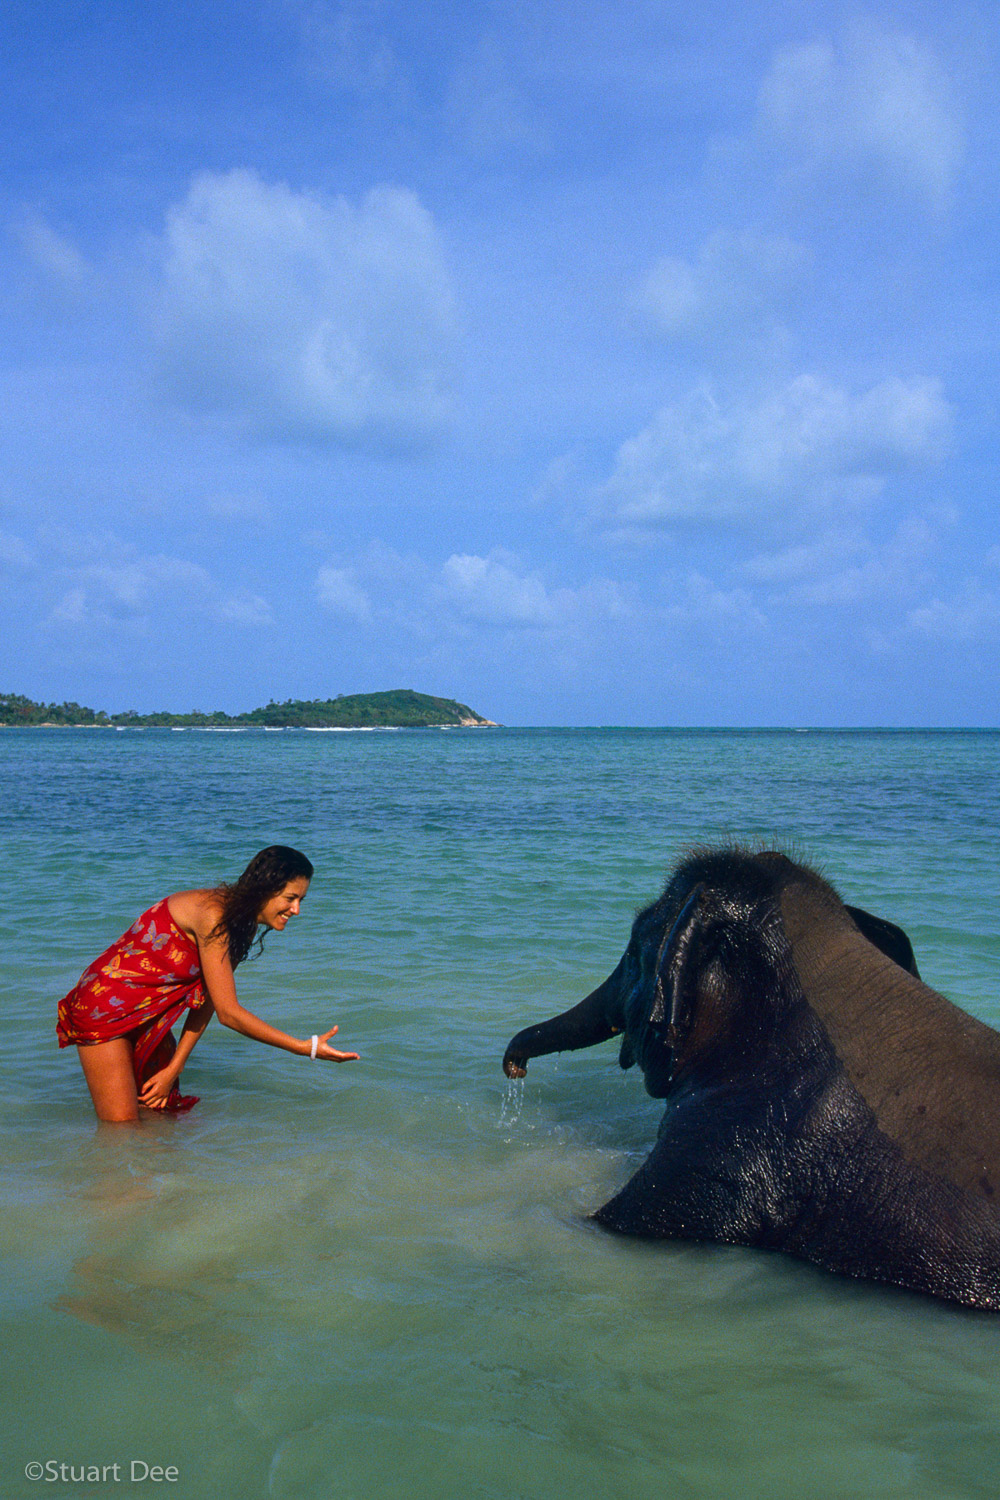 Young woman interacting with baby elephant, Chaweng Beach, Samui, Thailand   R